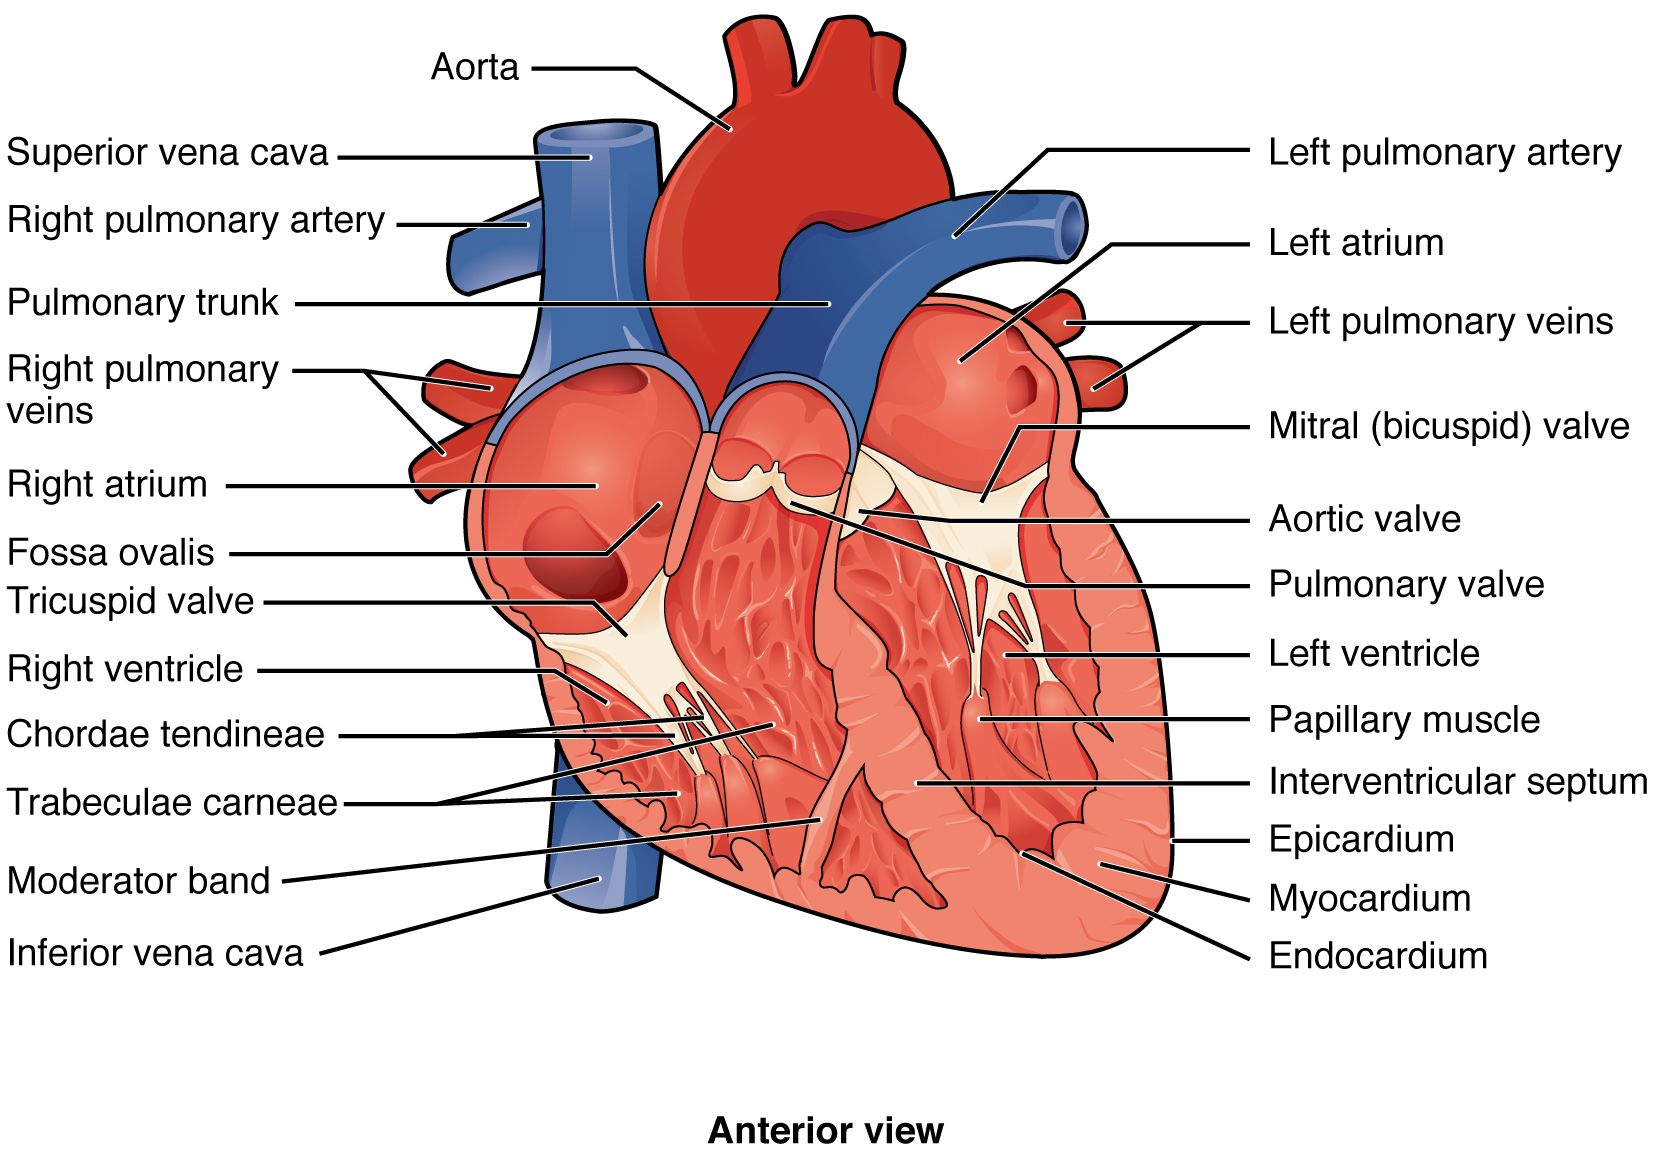 Label Heart Diagram Worksheet Pdf Guide And Troubleshooting Of Simple Science Diagrams Pinterest Anatomy Interior Diagr On Rh Com Unlabeled